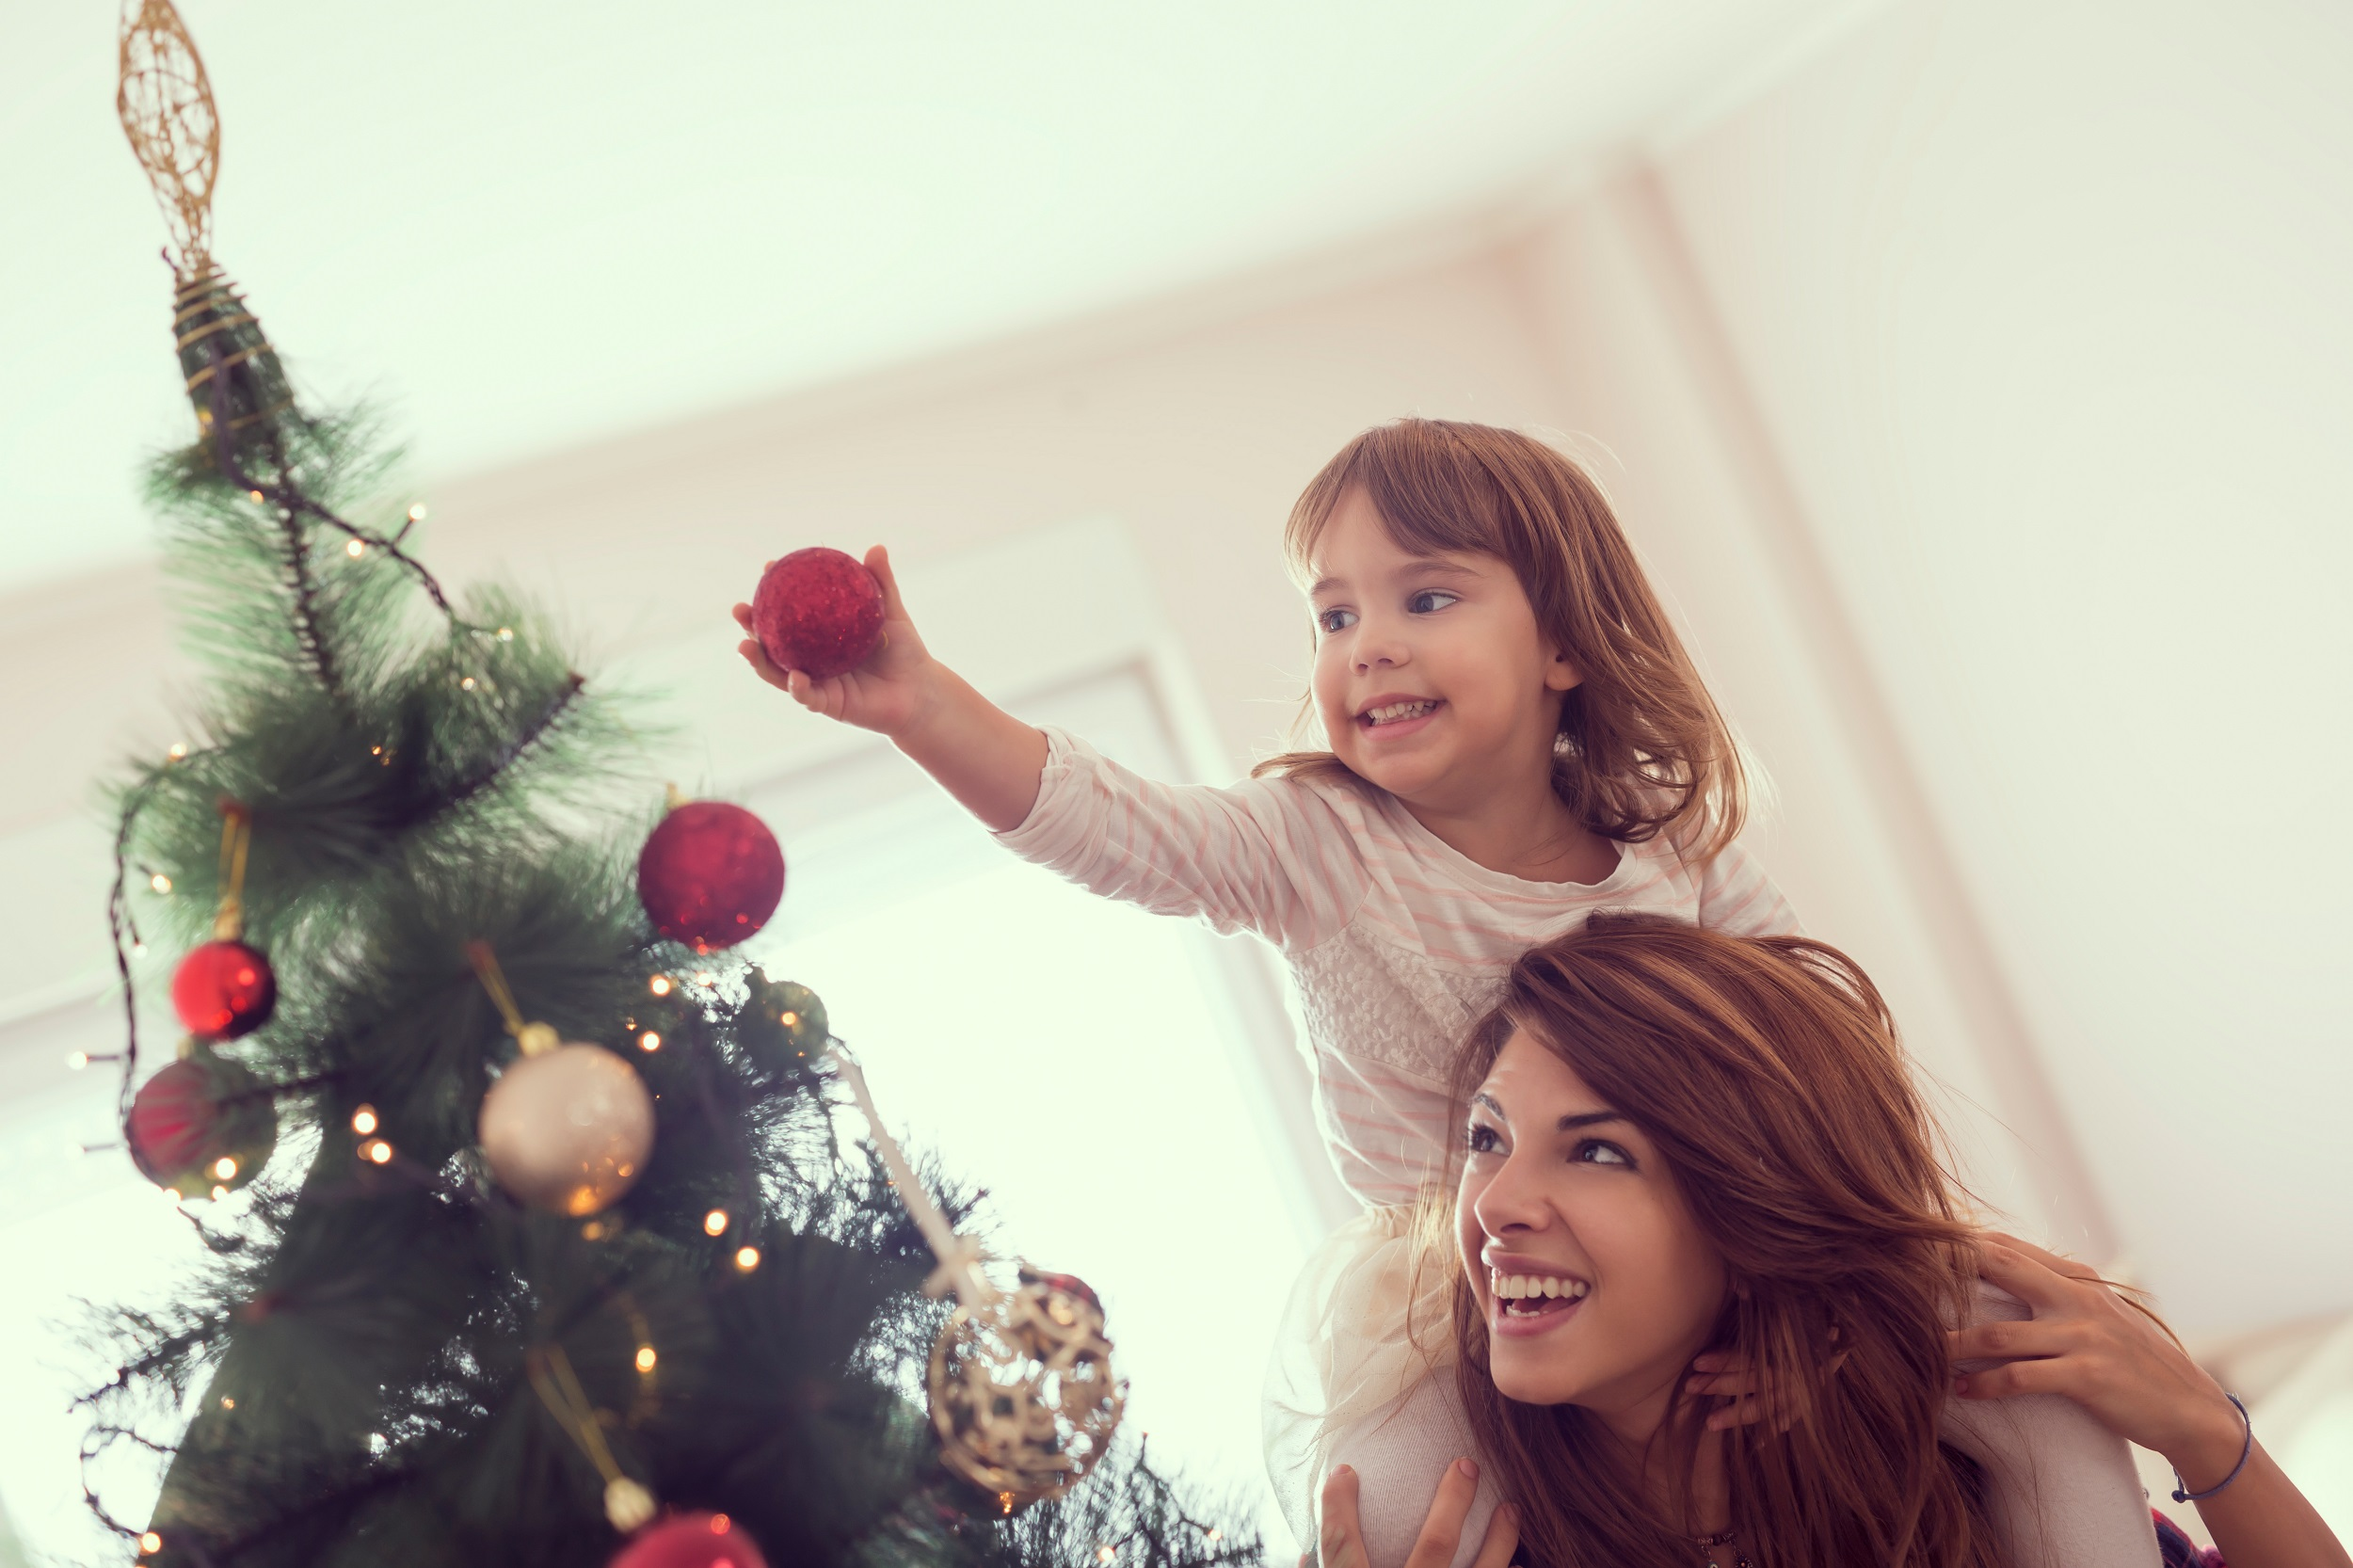 People Who Decorate for Christmas Earlier Are Happier, According to a Psychologist